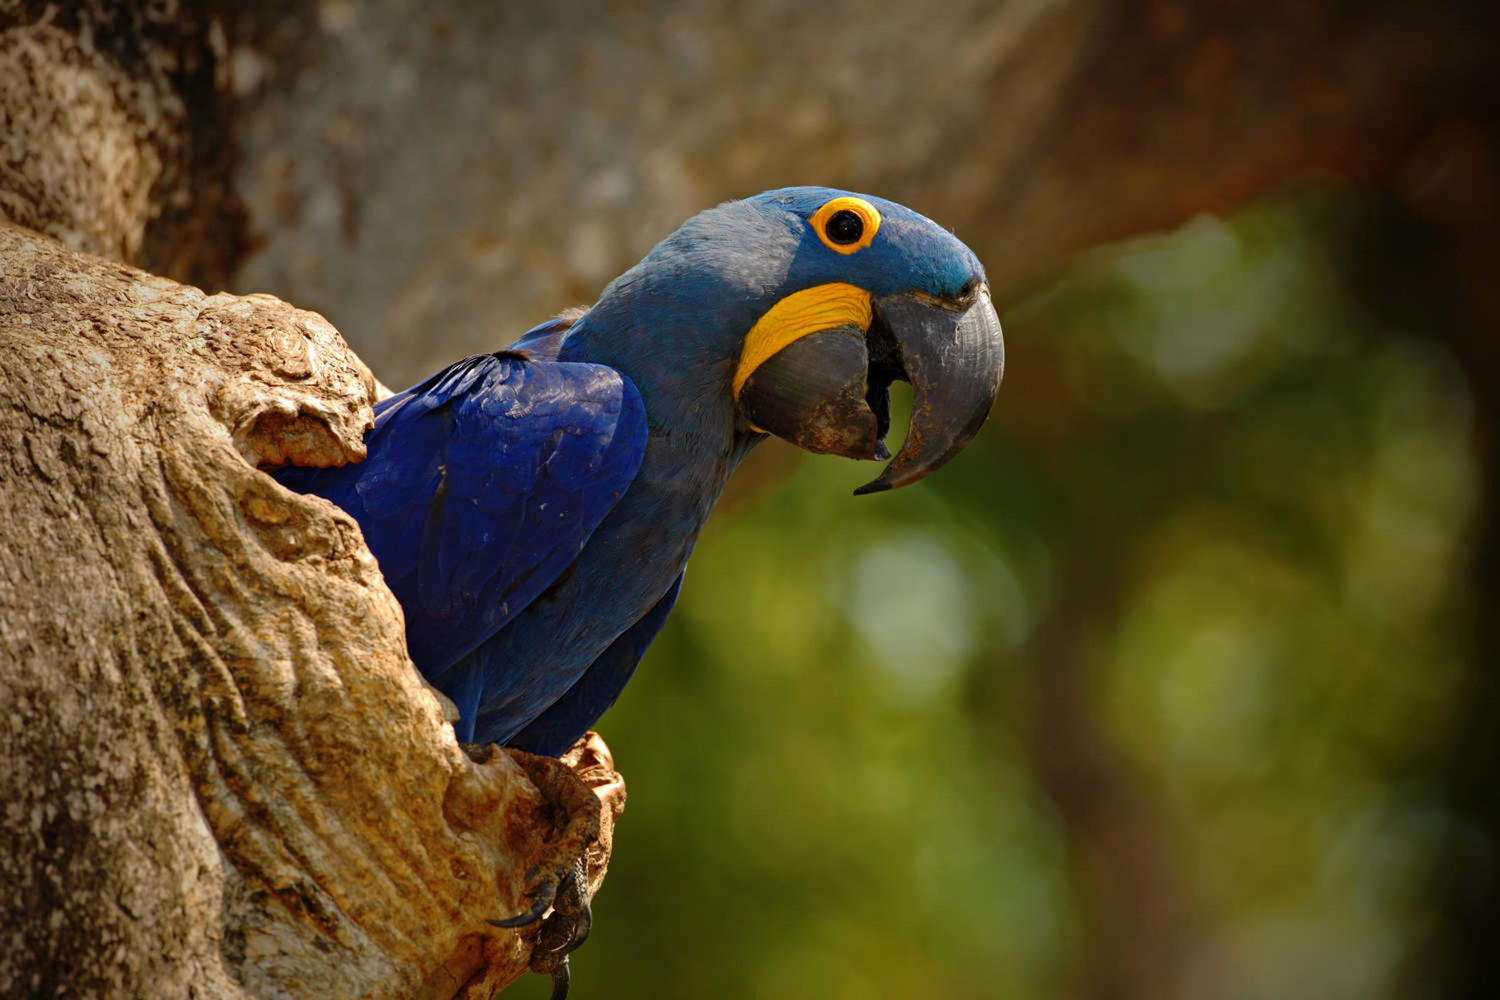 Big blue parrot hyacinth macaw in a tree nest cavity in Pantanal